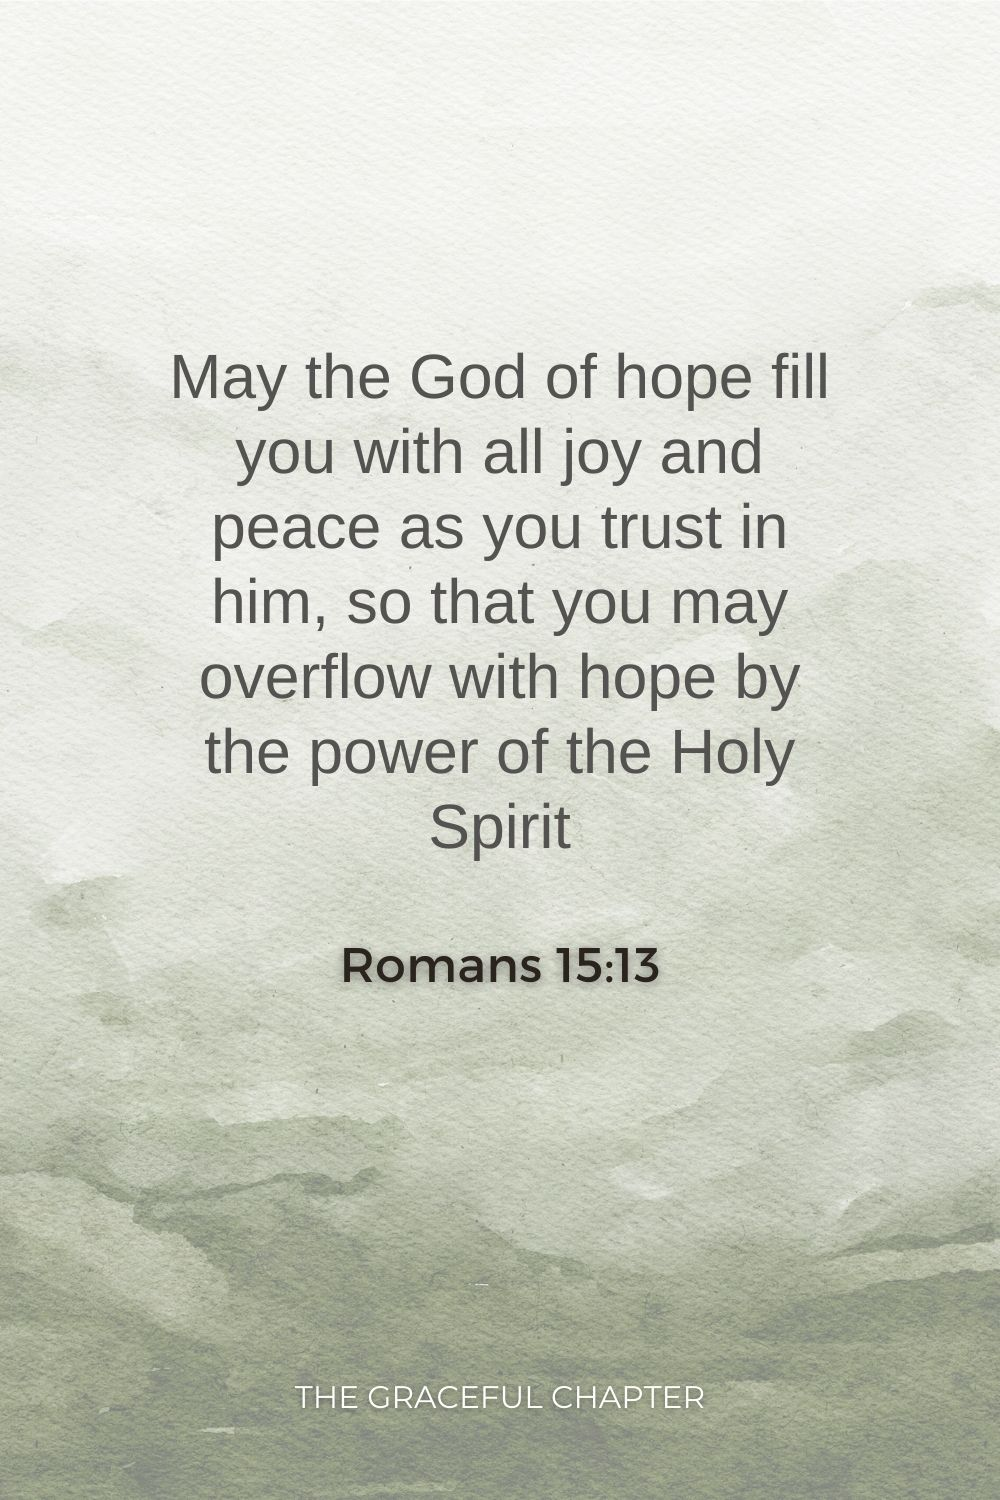 May the God of hope fill you with all joy and peace as you trust in him, so that you may overflow with hope by the power of the Holy Spirit  Romans 15:13